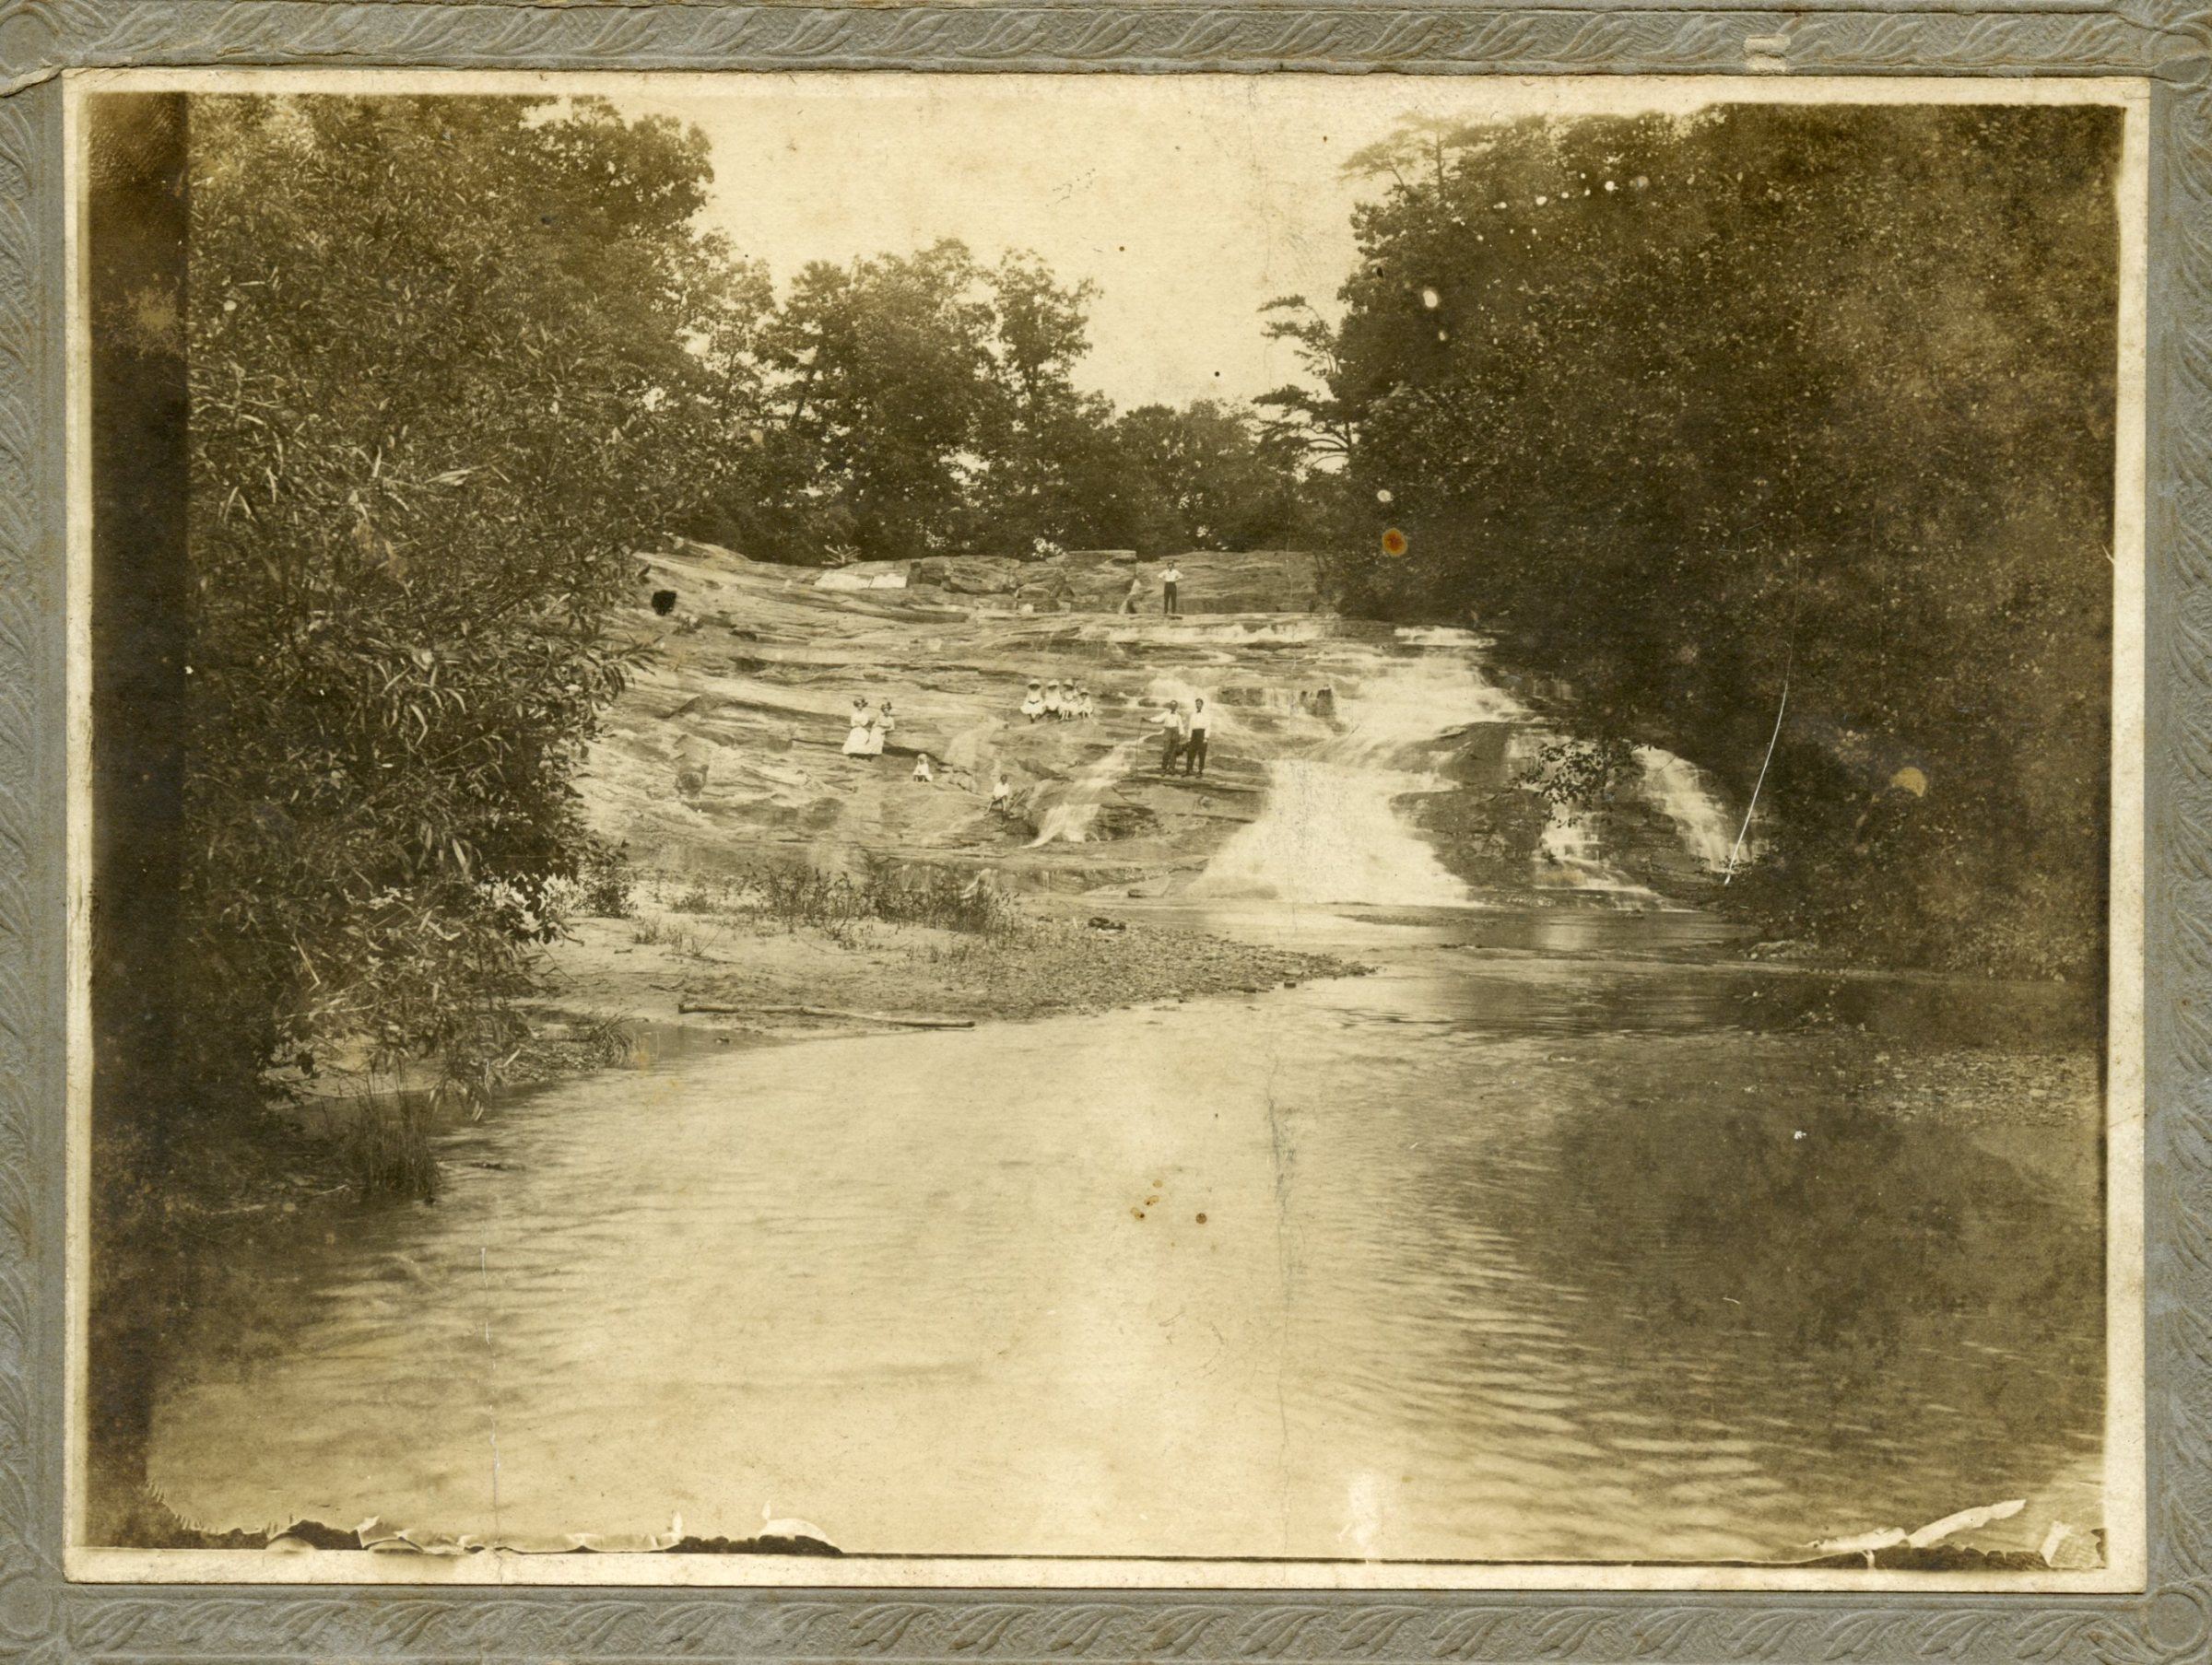 Early hikers at the Carter Falls, abt. 1910